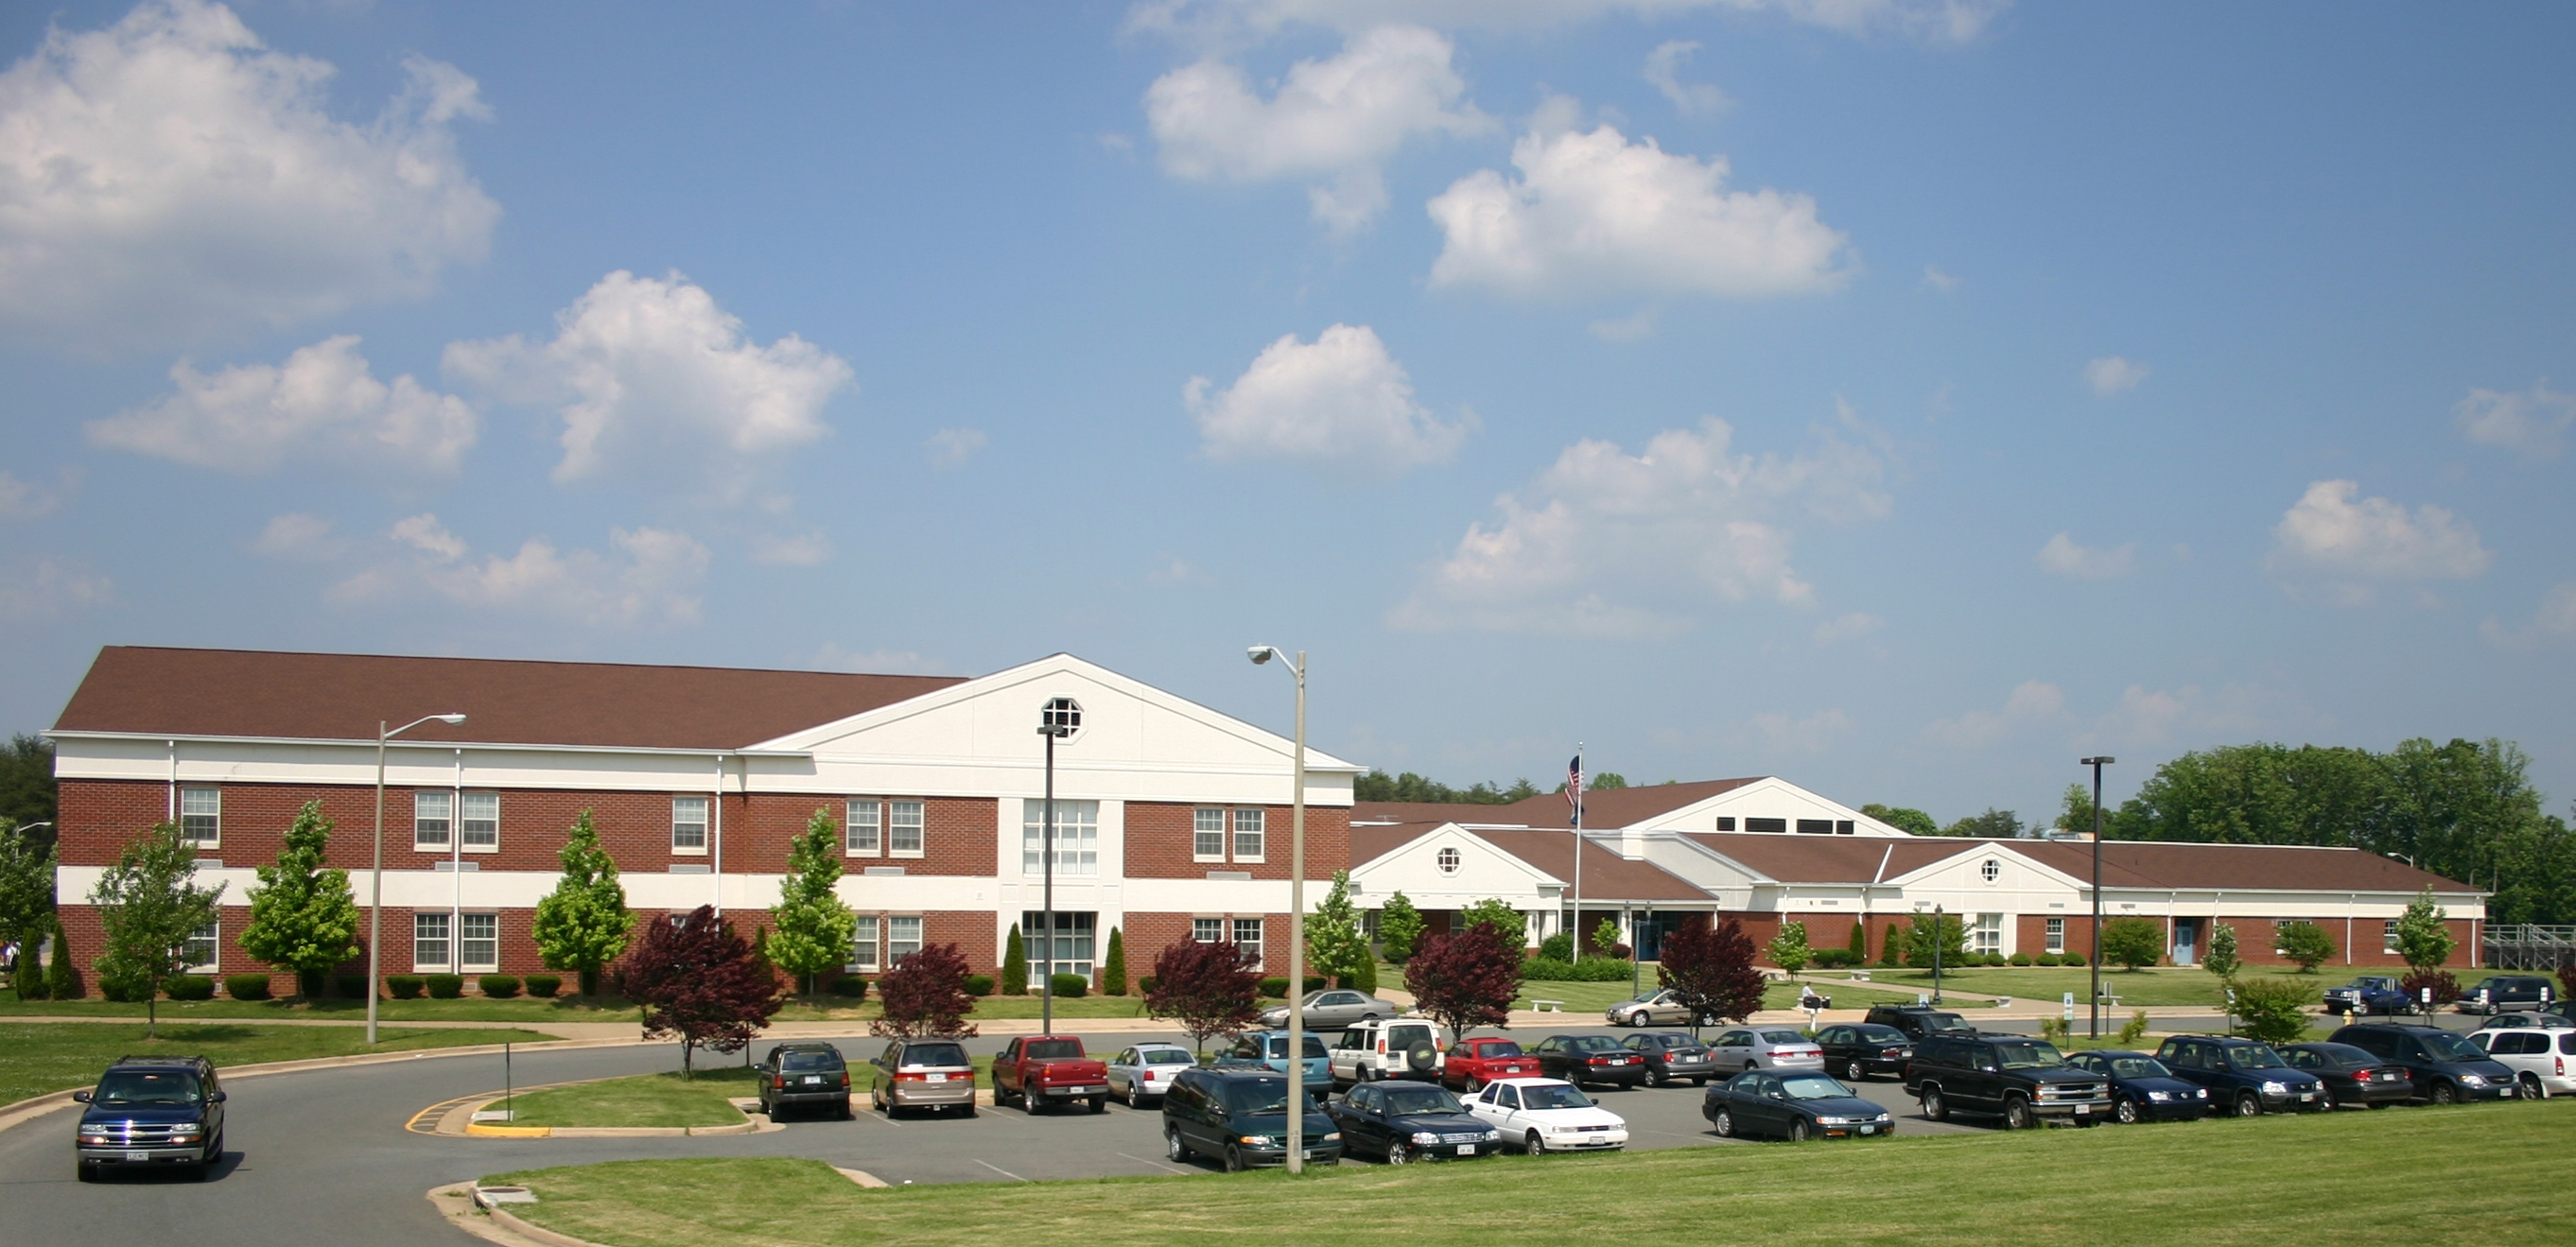 H. H. Poole Middle / Homepage